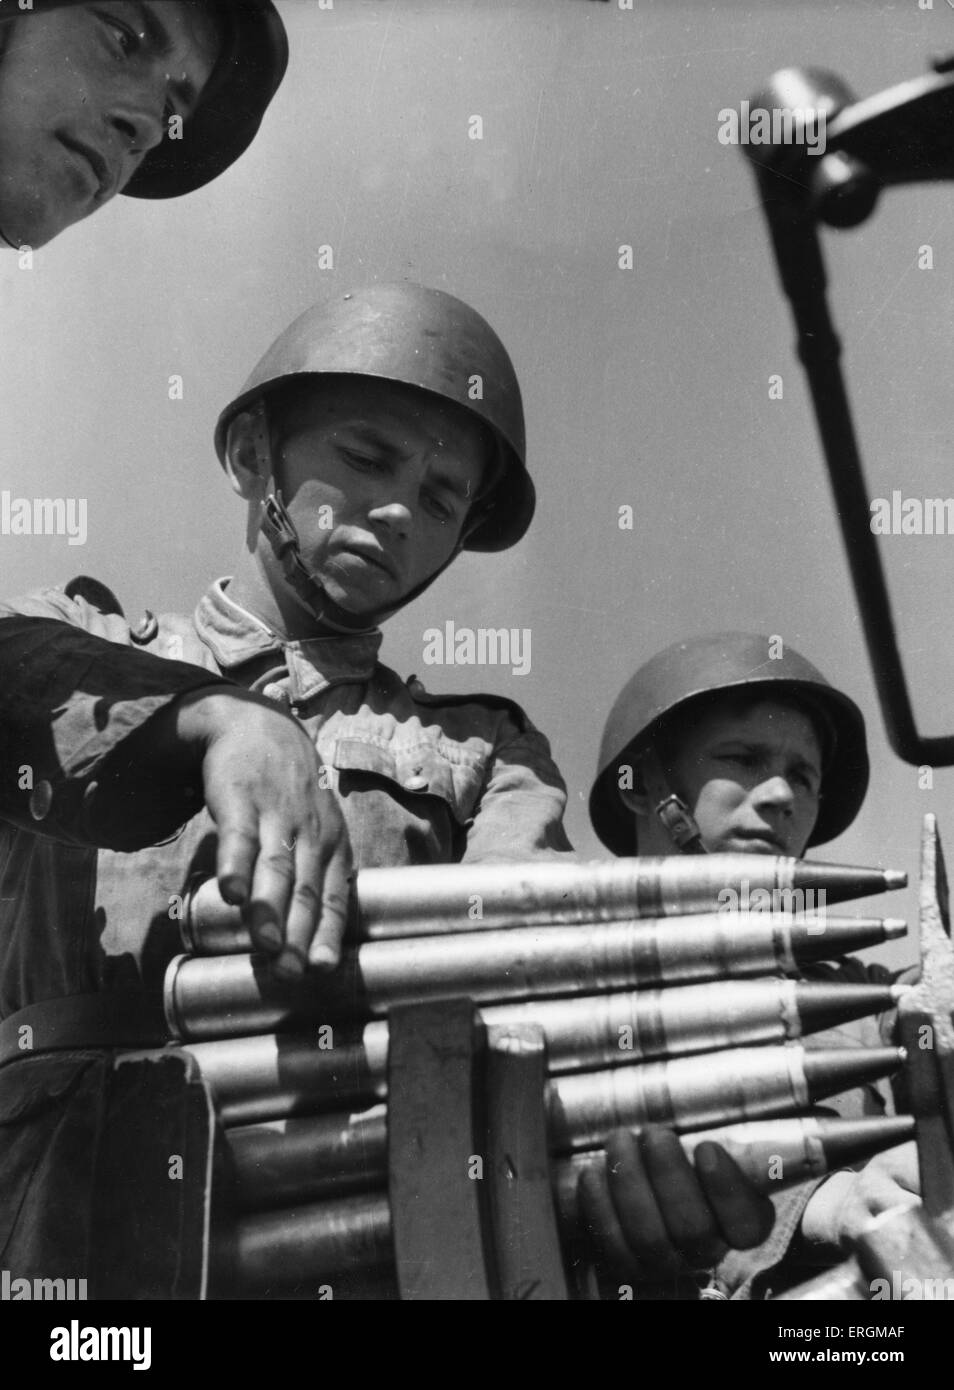 Russian soldiers loading ammunition during  the Second World War, c.1944. - Stock Image